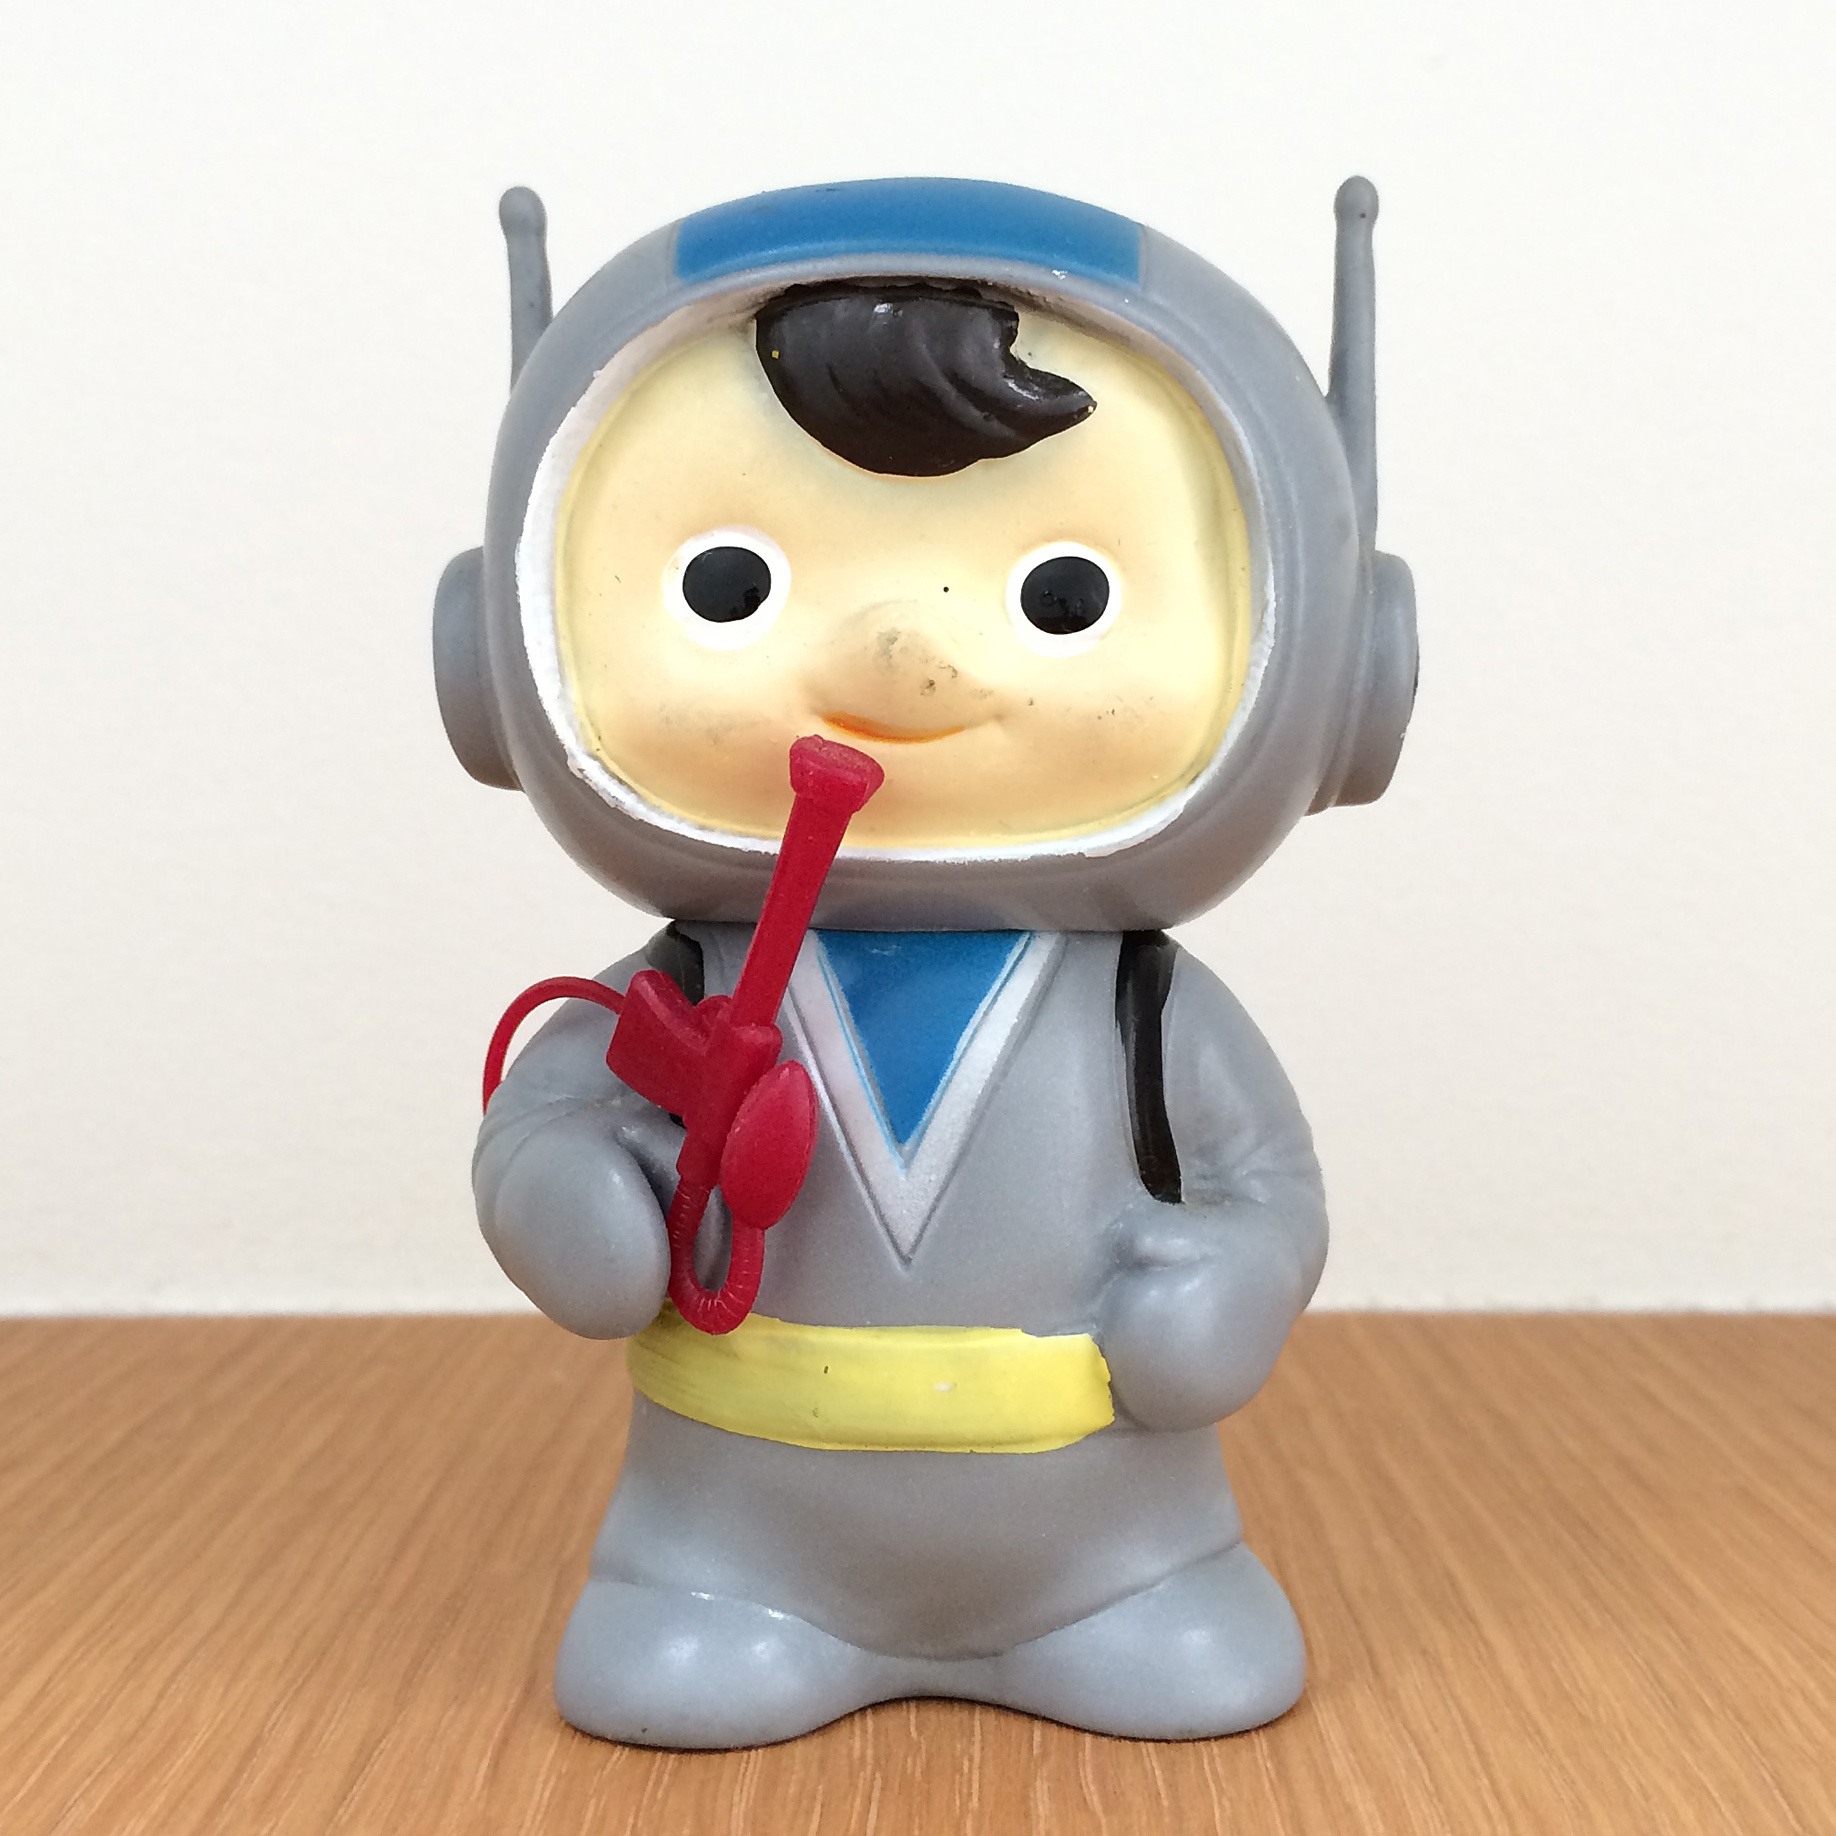 Retro Space Themed Japanese Collectibles